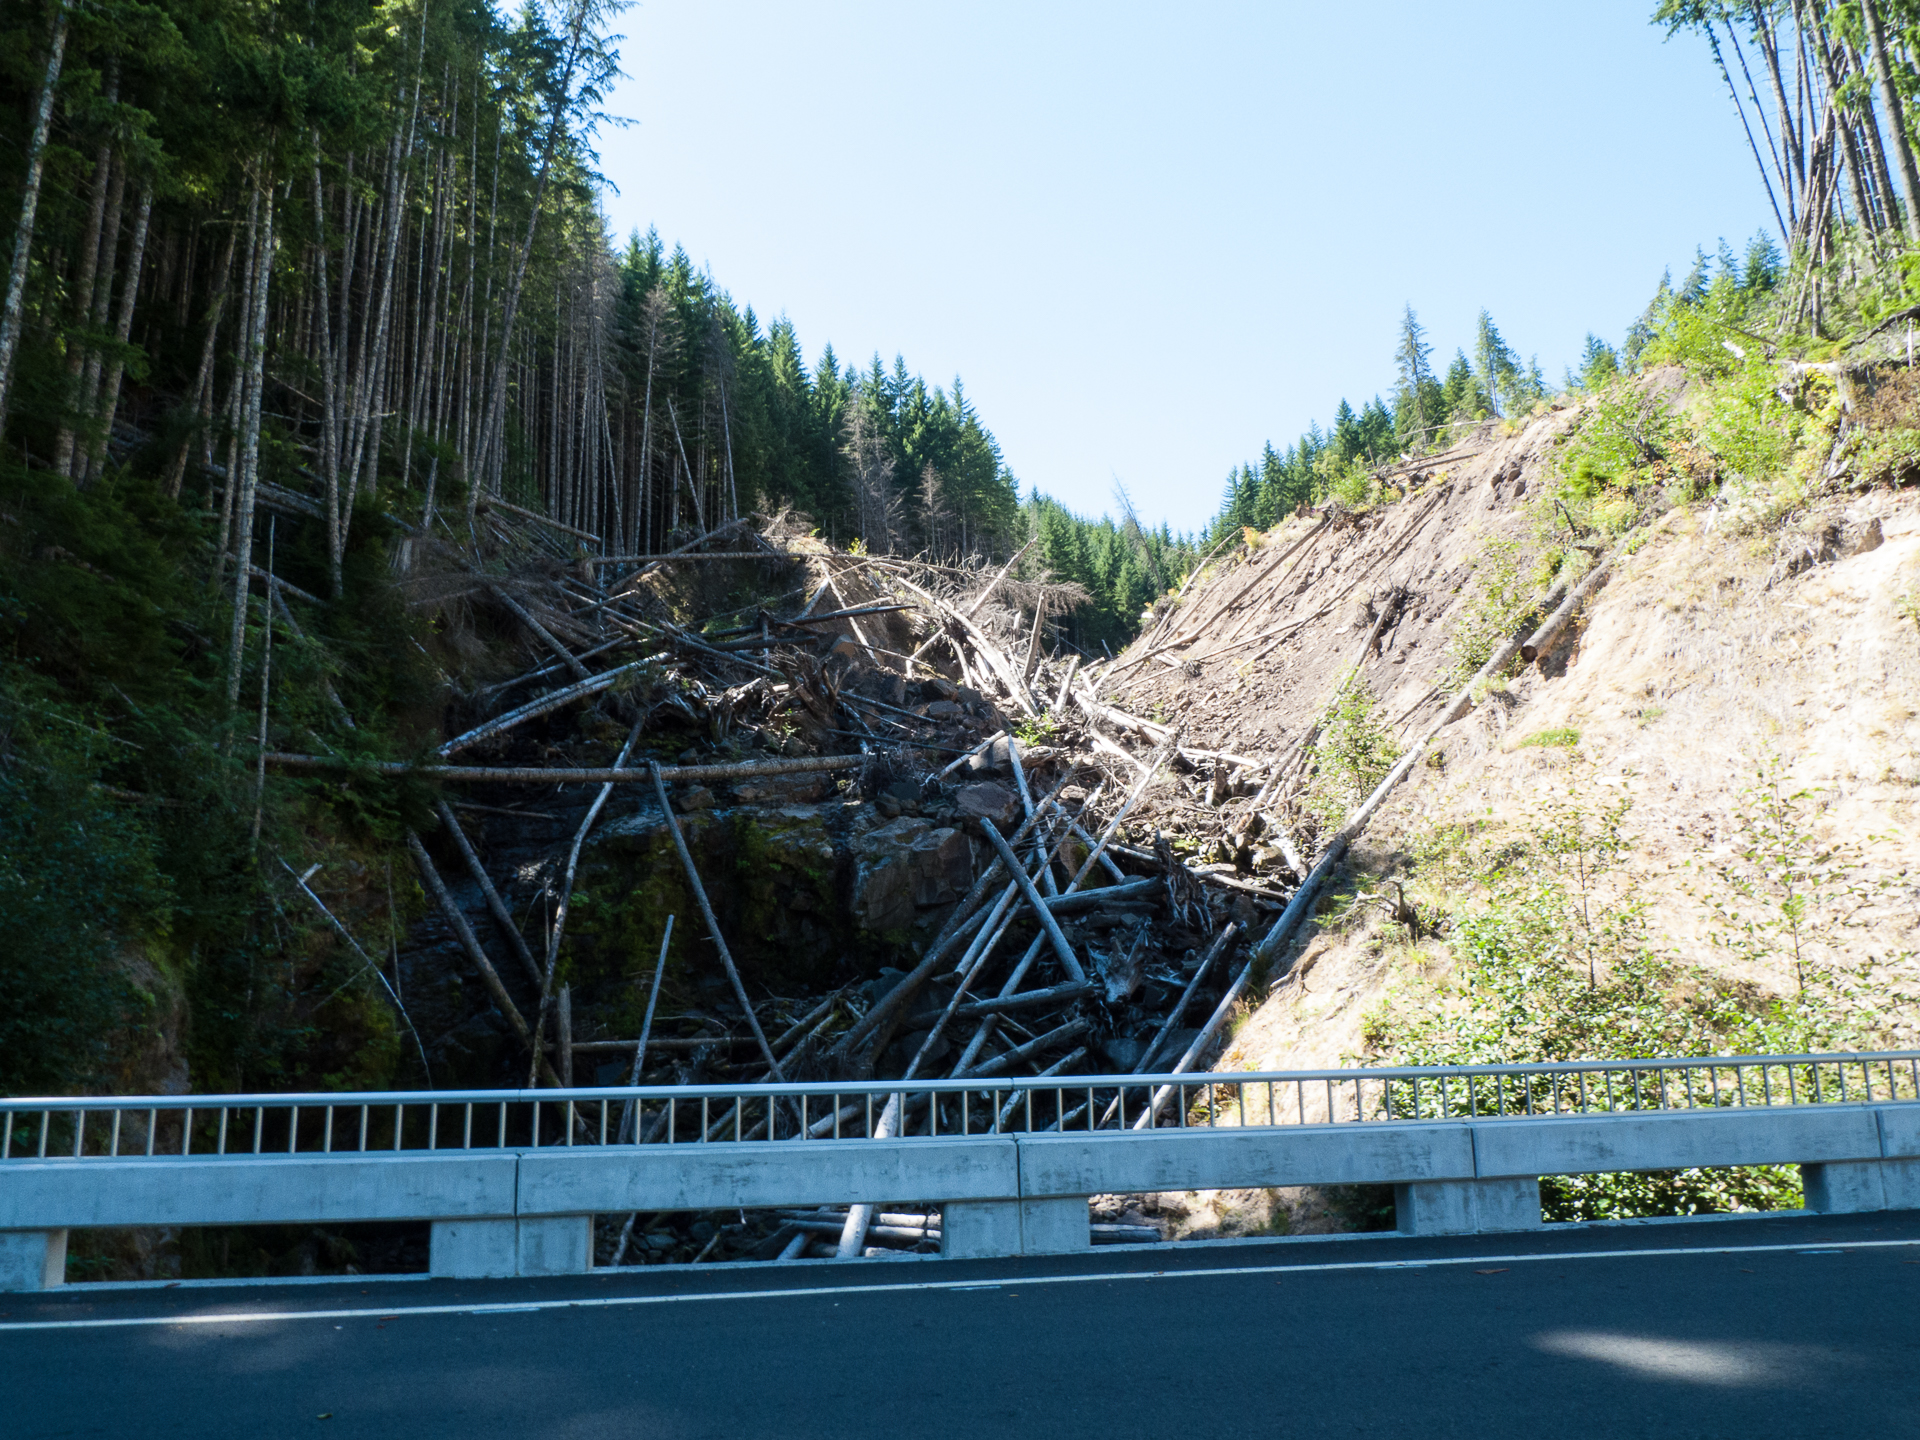 The results of the lahar from a few years ago. The photo doesn't do the sheer volume of the destruction justice.